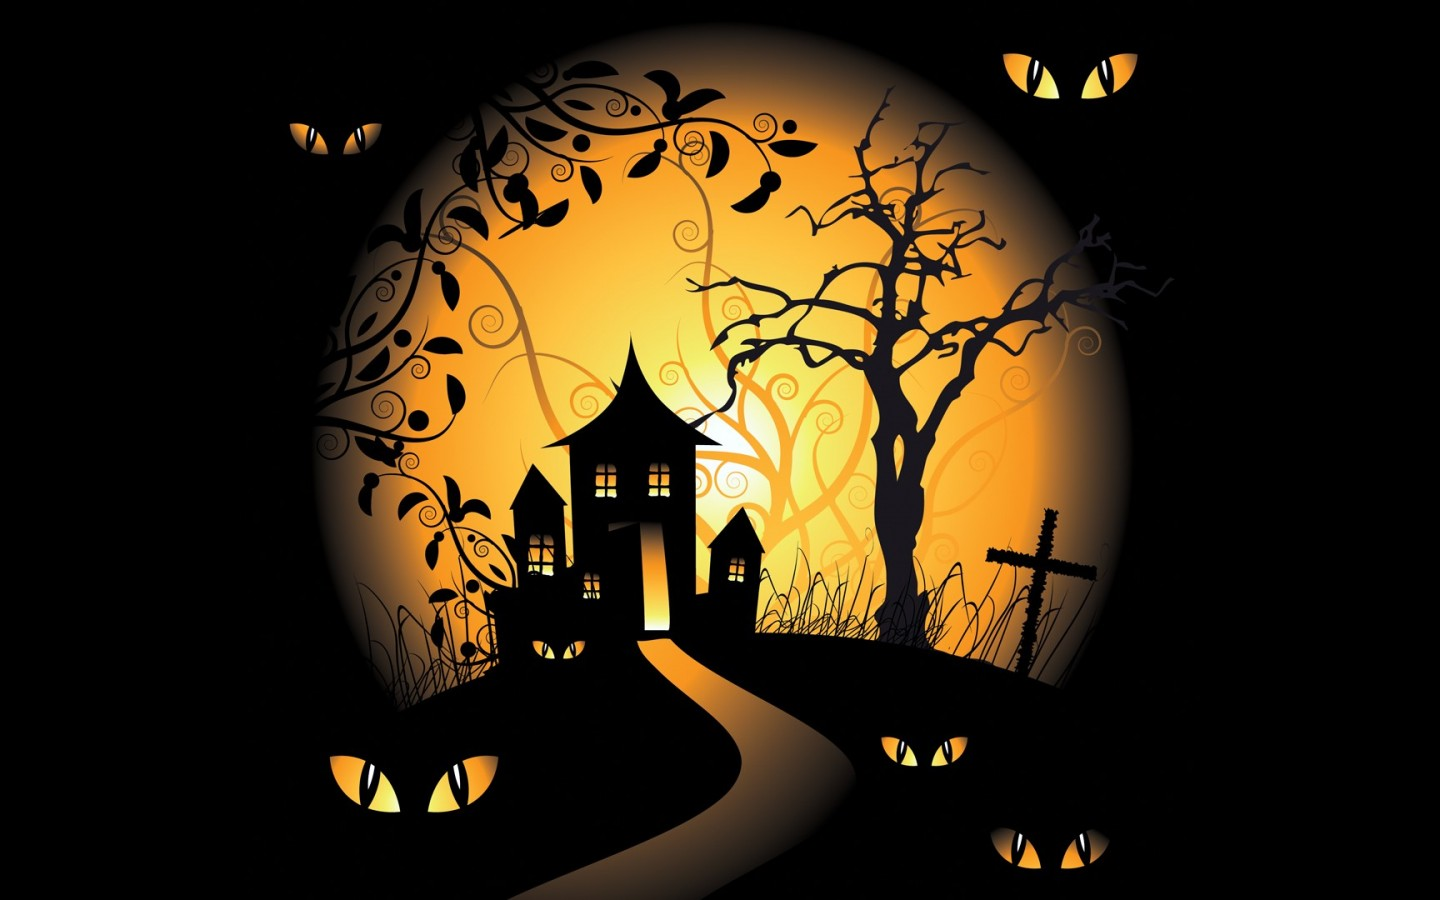 Free Hd Halloween Wallpaper